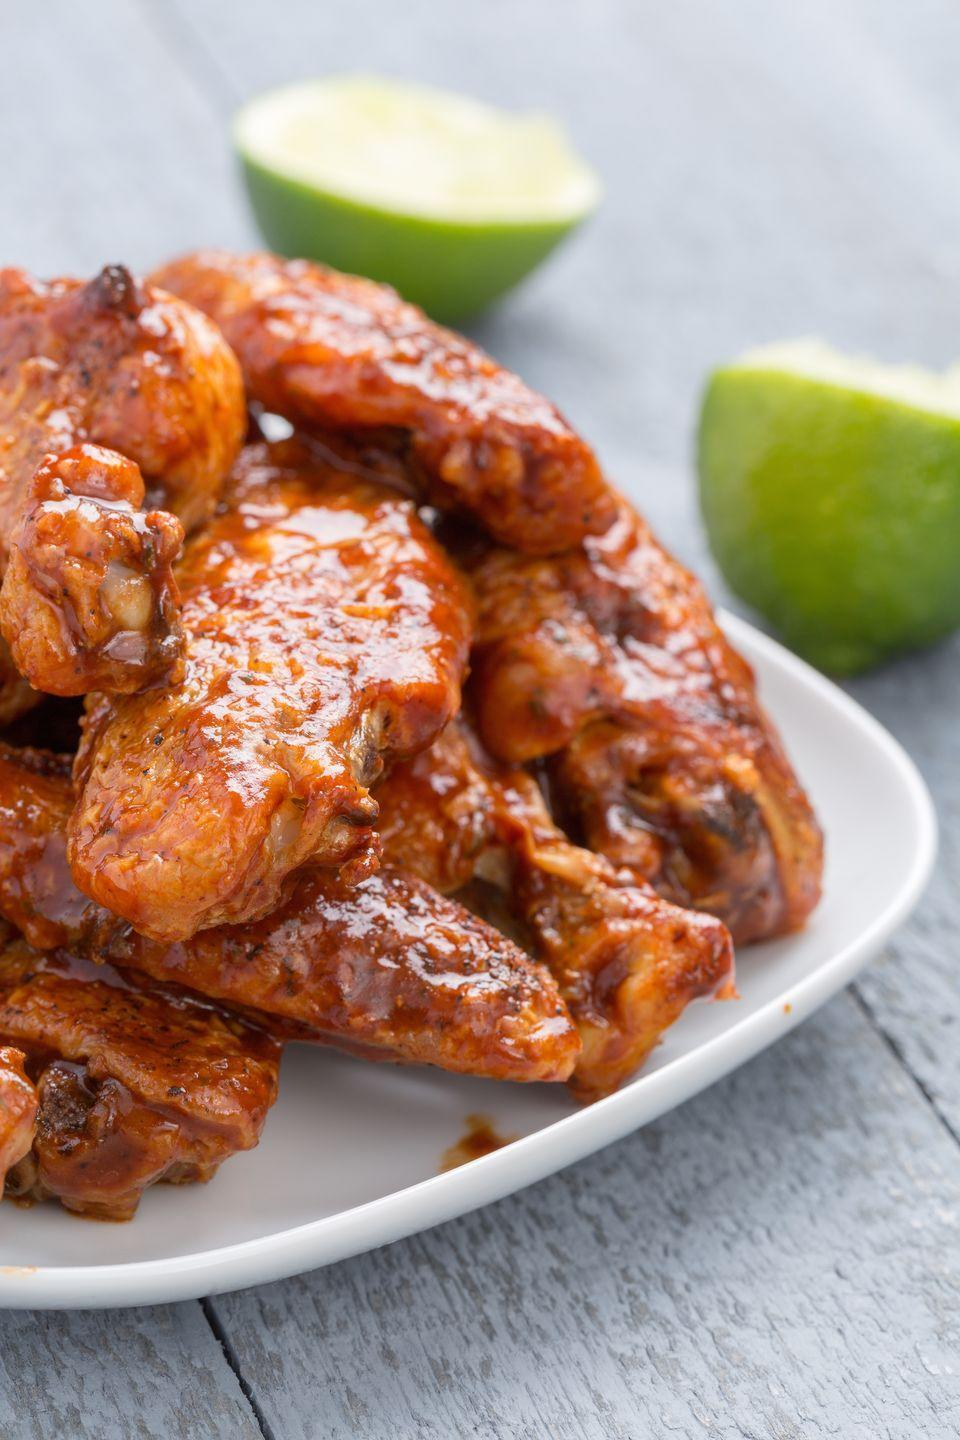 """<p>If you're the type who thinks Sriracha is spicy enough, these wings are not for you. Squeeze them with extra lime to tame the flame.</p><p>Get the recipe from <a href=""""https://www.delish.com/cooking/recipe-ideas/recipes/a44371/slow-cooker-chipotle-lime-chicken-wings-recipe/"""" rel=""""nofollow noopener"""" target=""""_blank"""" data-ylk=""""slk:Delish"""" class=""""link rapid-noclick-resp"""">Delish</a>.</p>"""